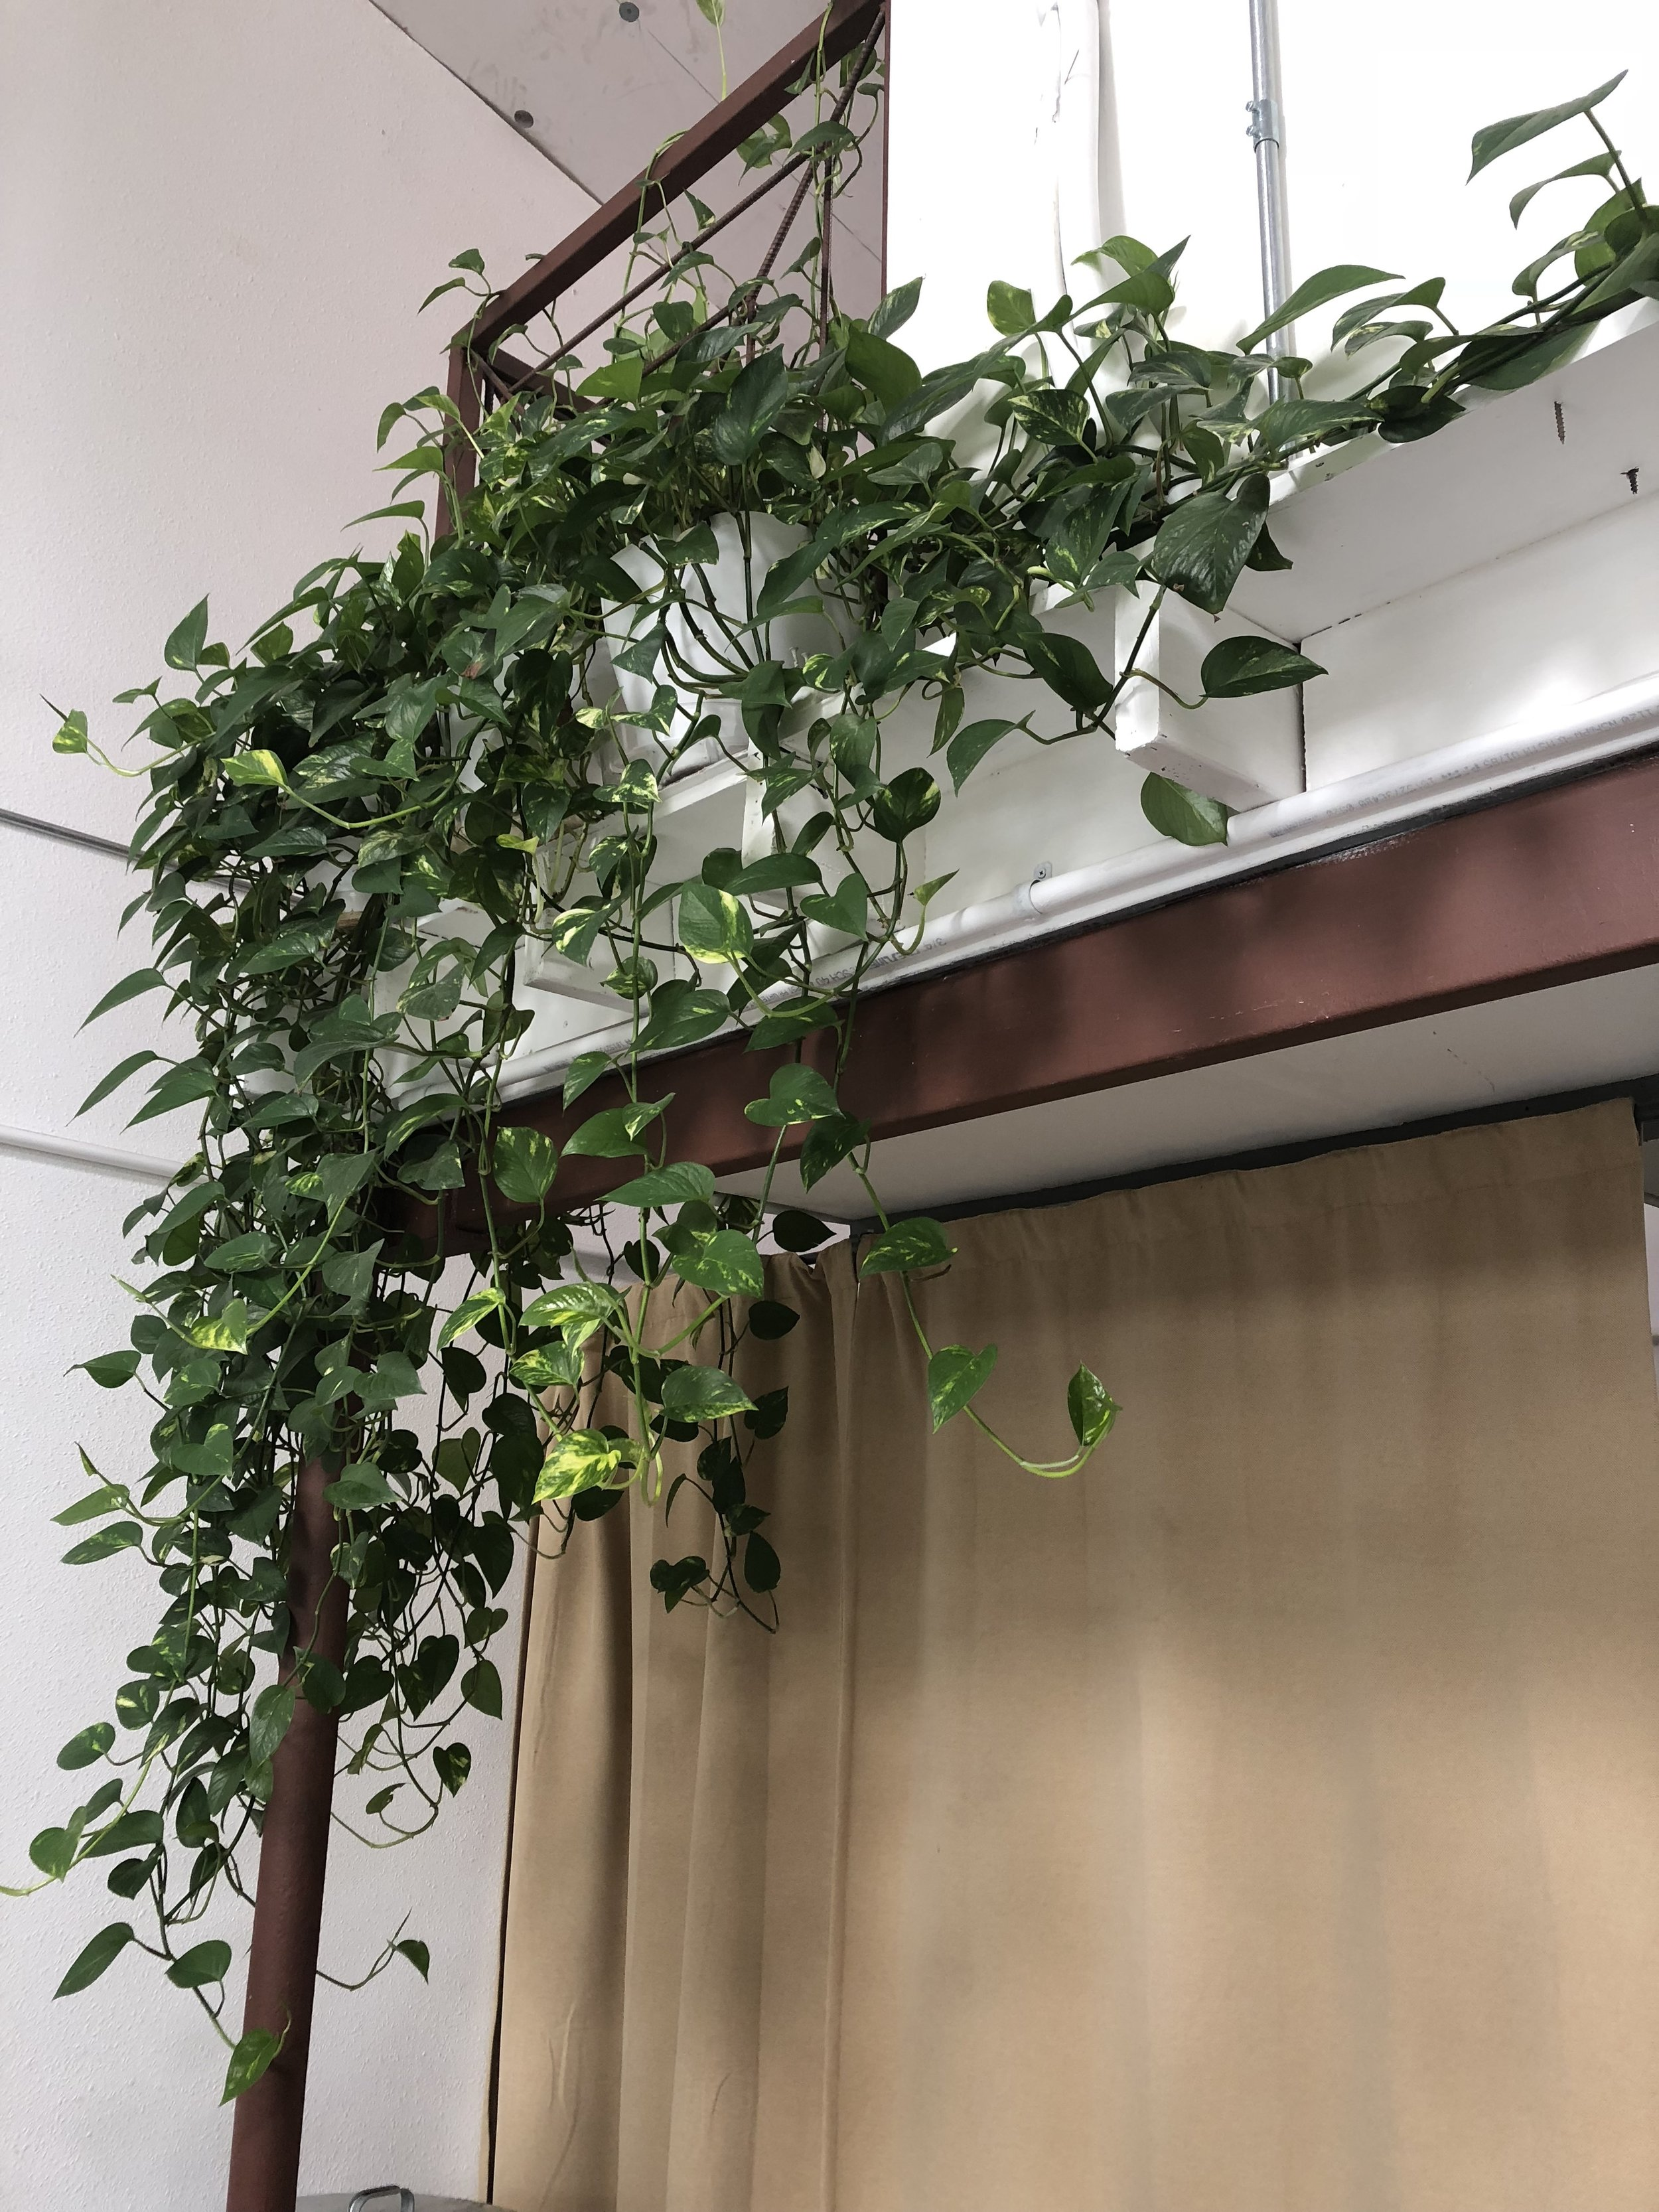 The Paper + Craft Pantry's beautiful Pothos